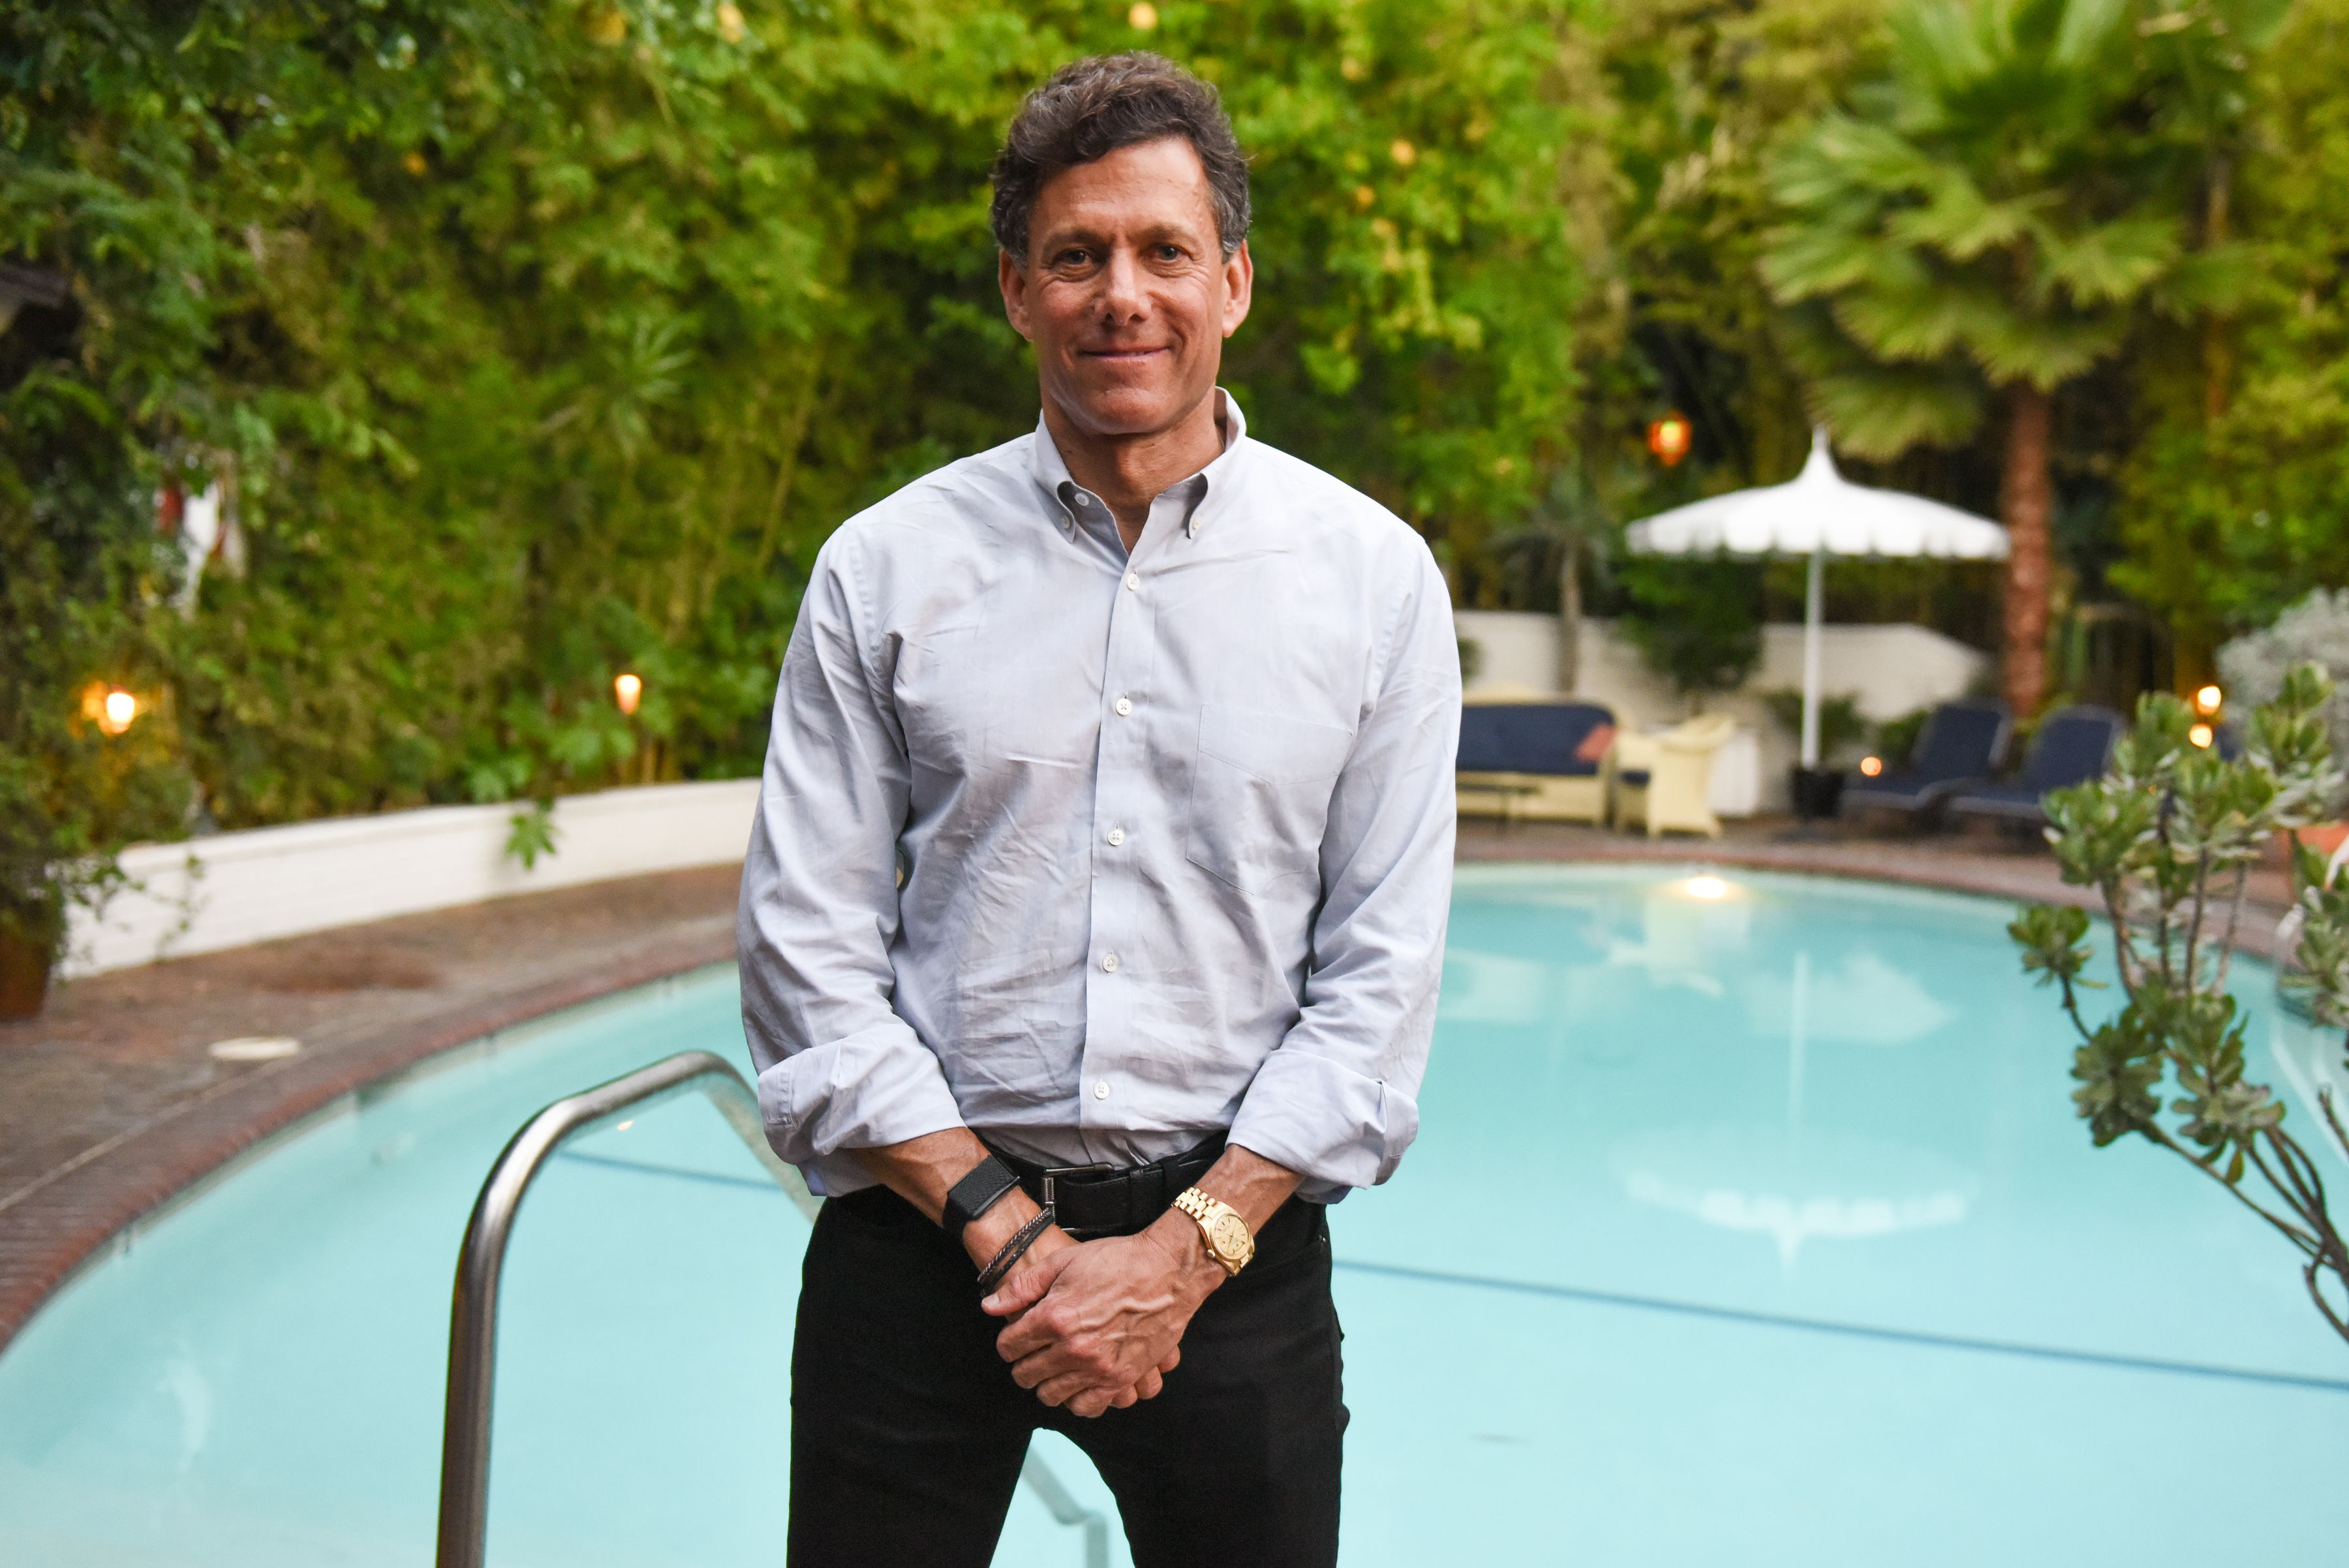 Strauss Zelnick 'Entirely Committed' to Take-Two Despite New CBS Role